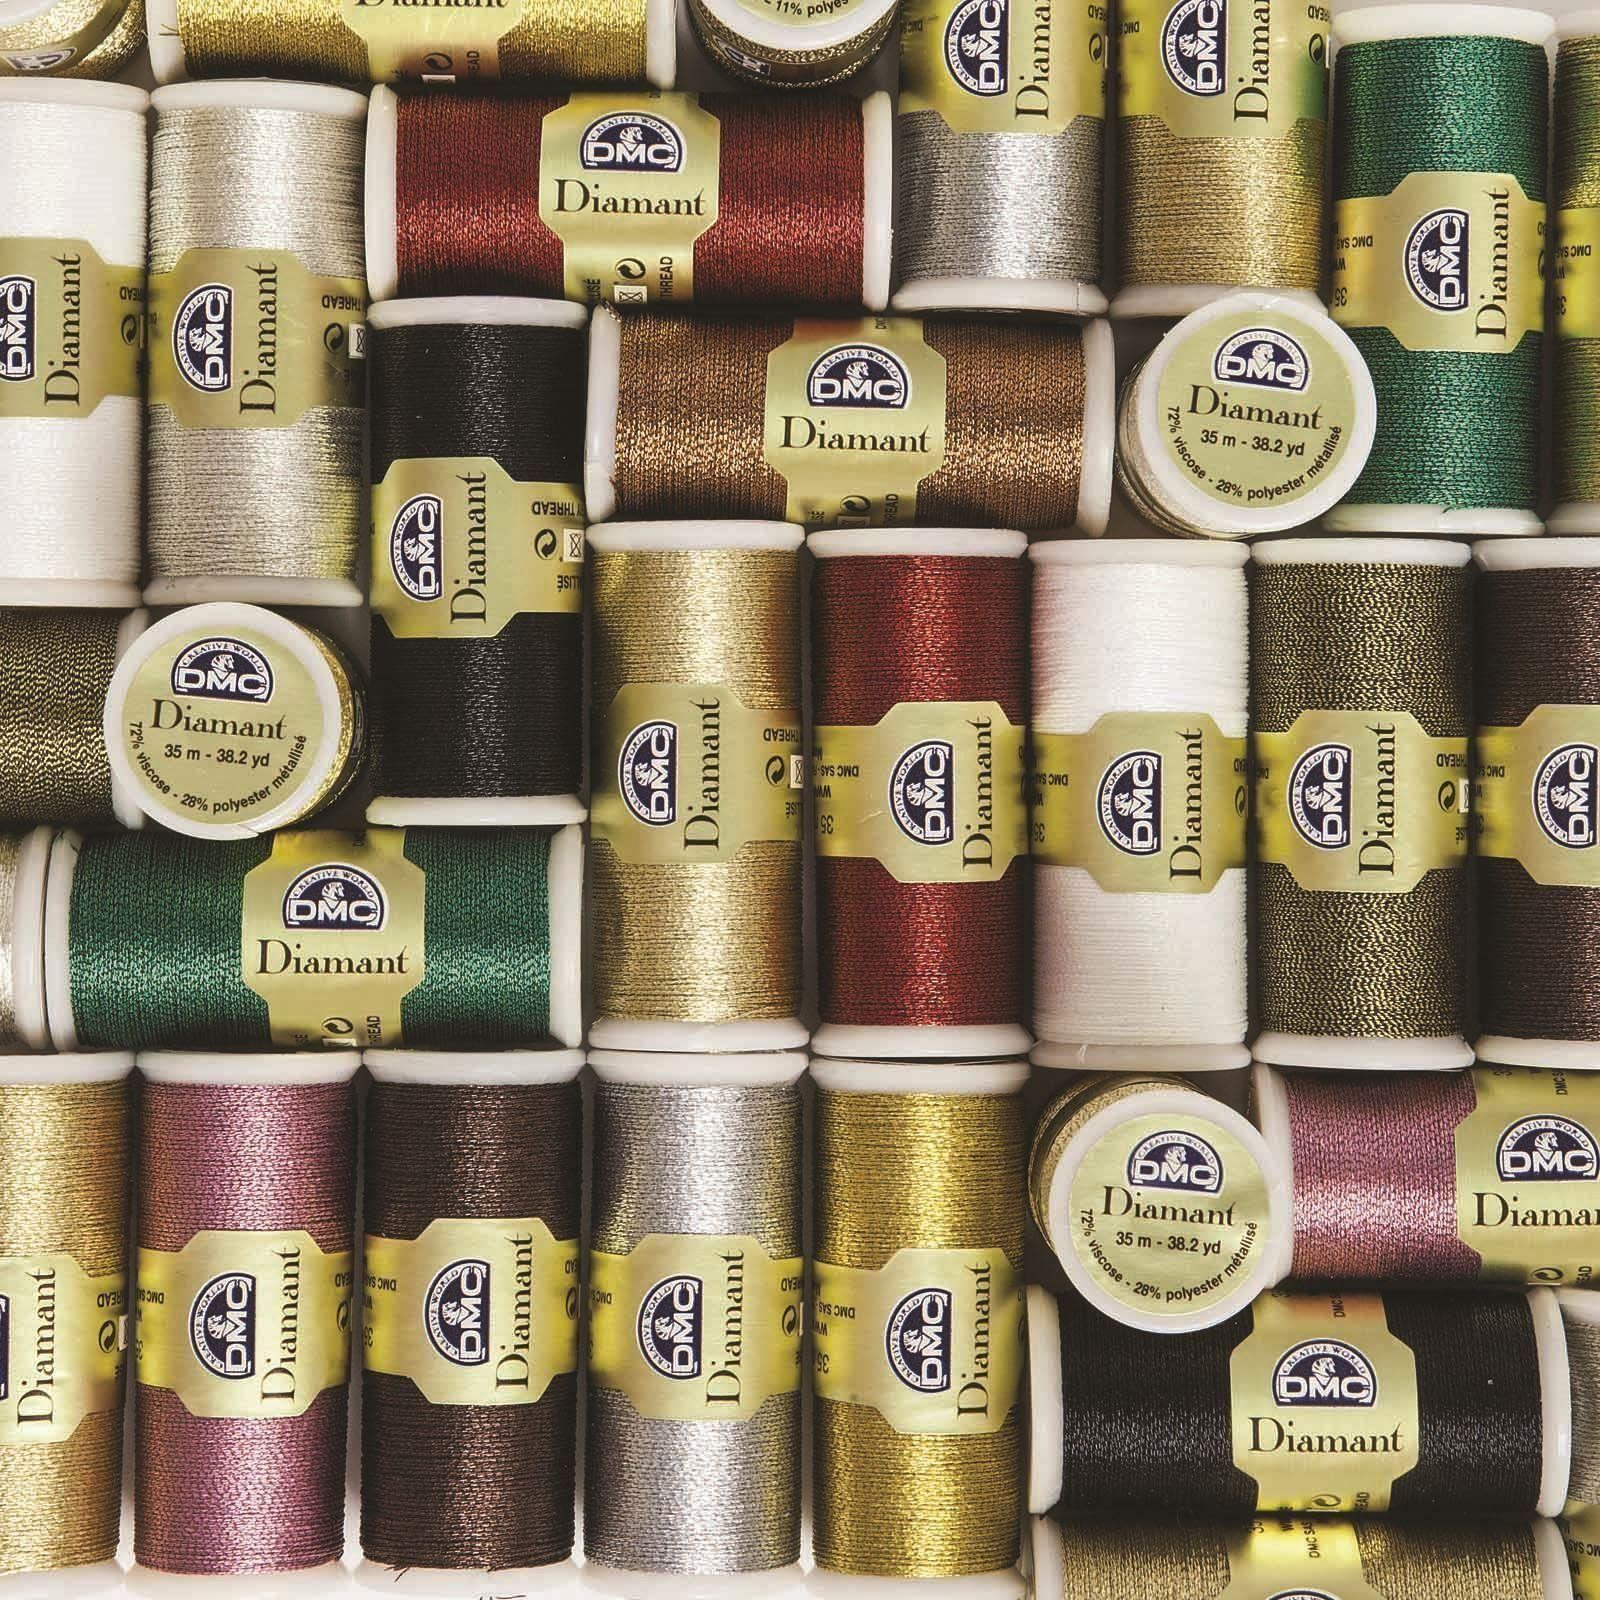 DMC-Diamant-Metallic-Embroidery-Thread-35m-Spool-Cross-Stitch thumbnail 15